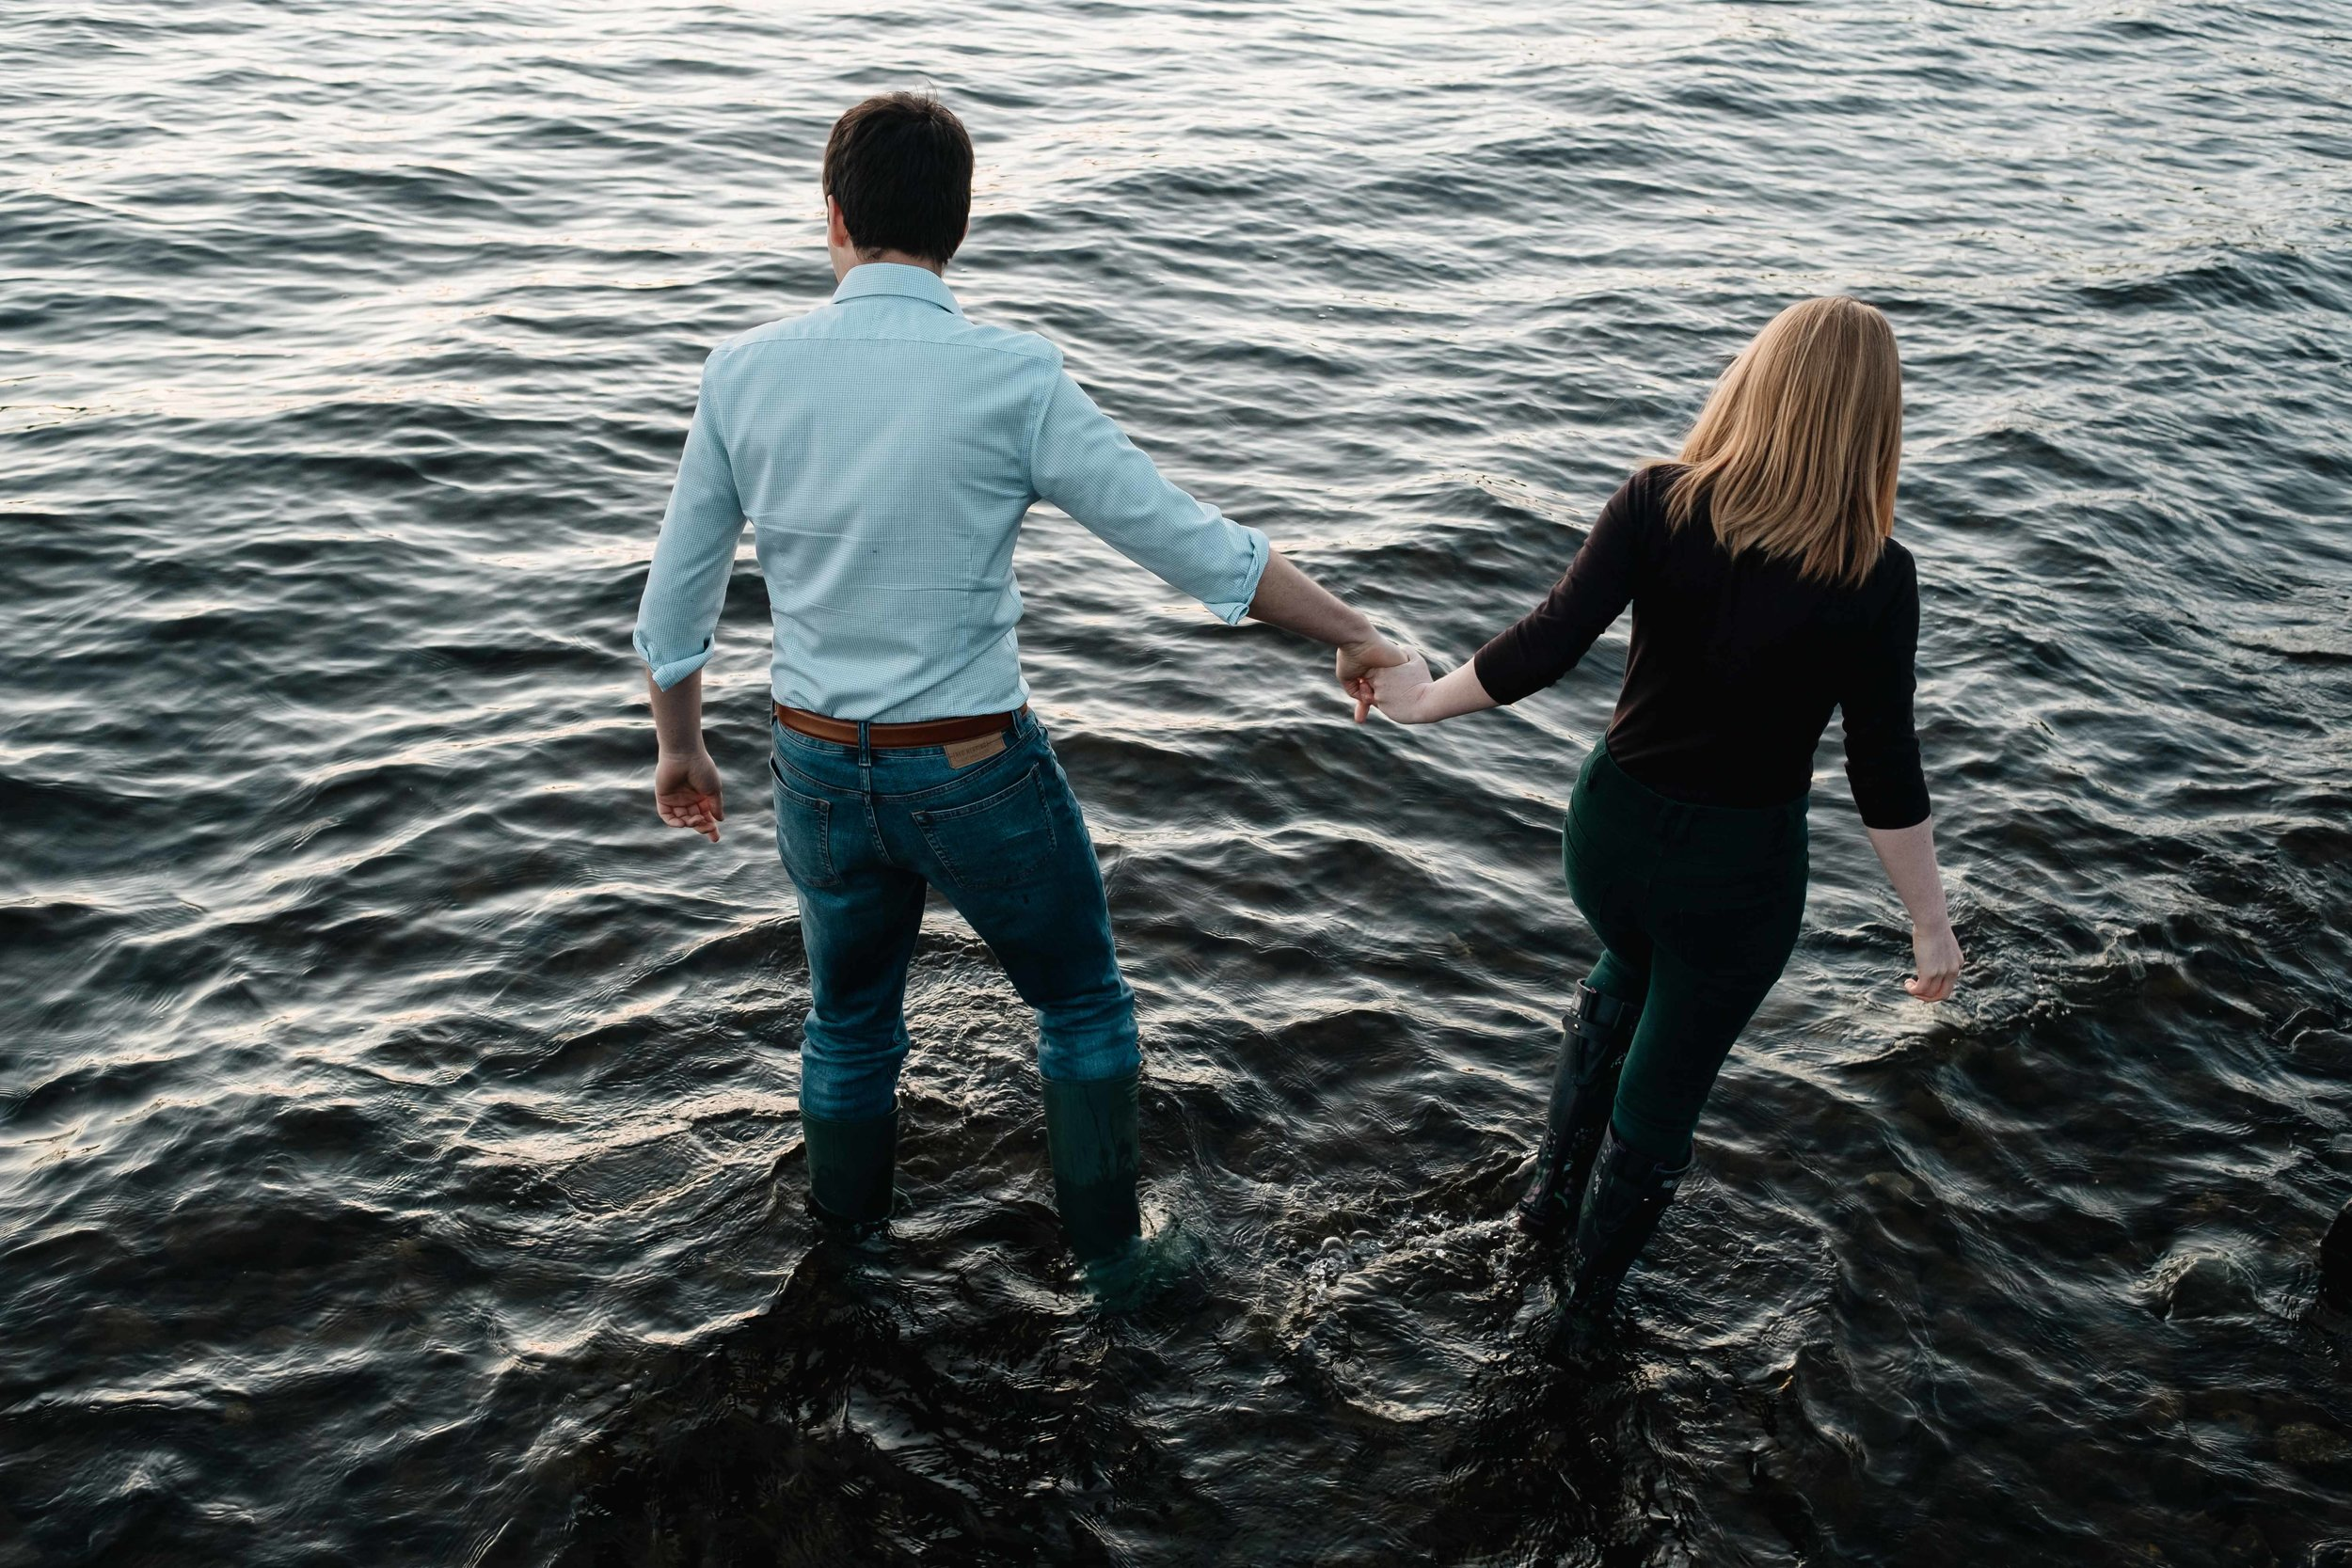 Couple are walking in water.